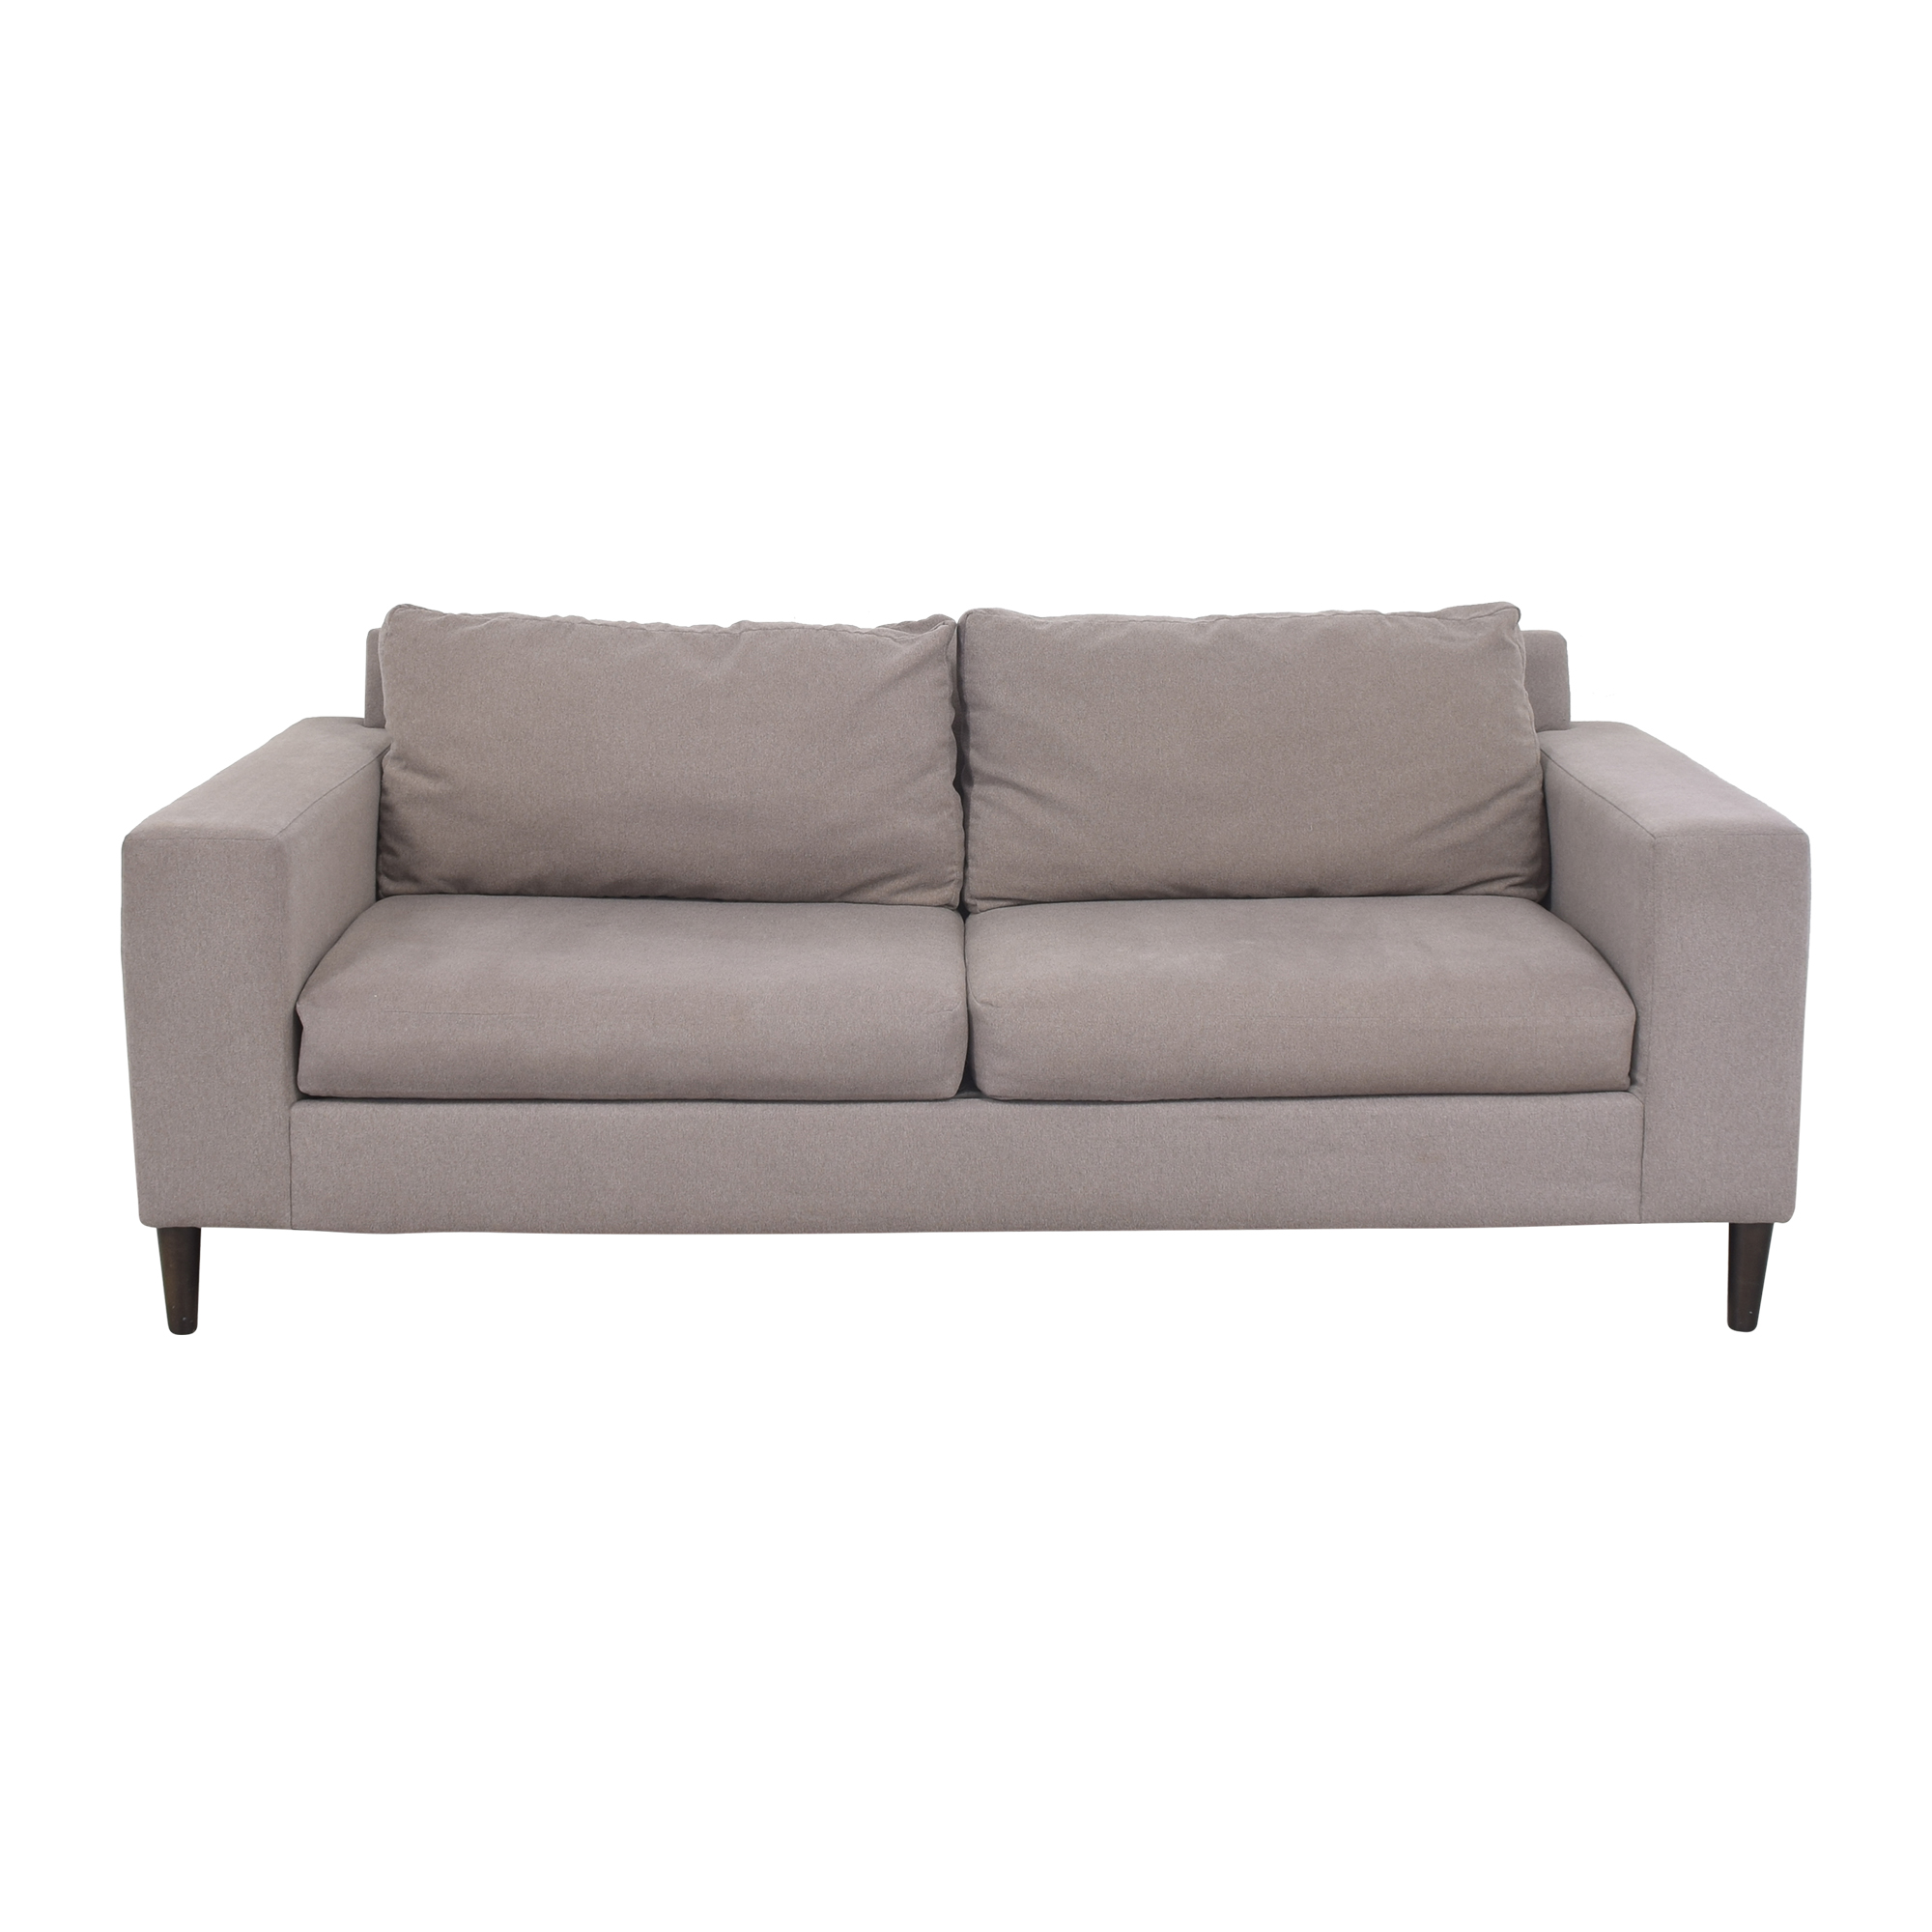 West Elm West Elm York Sofa on sale